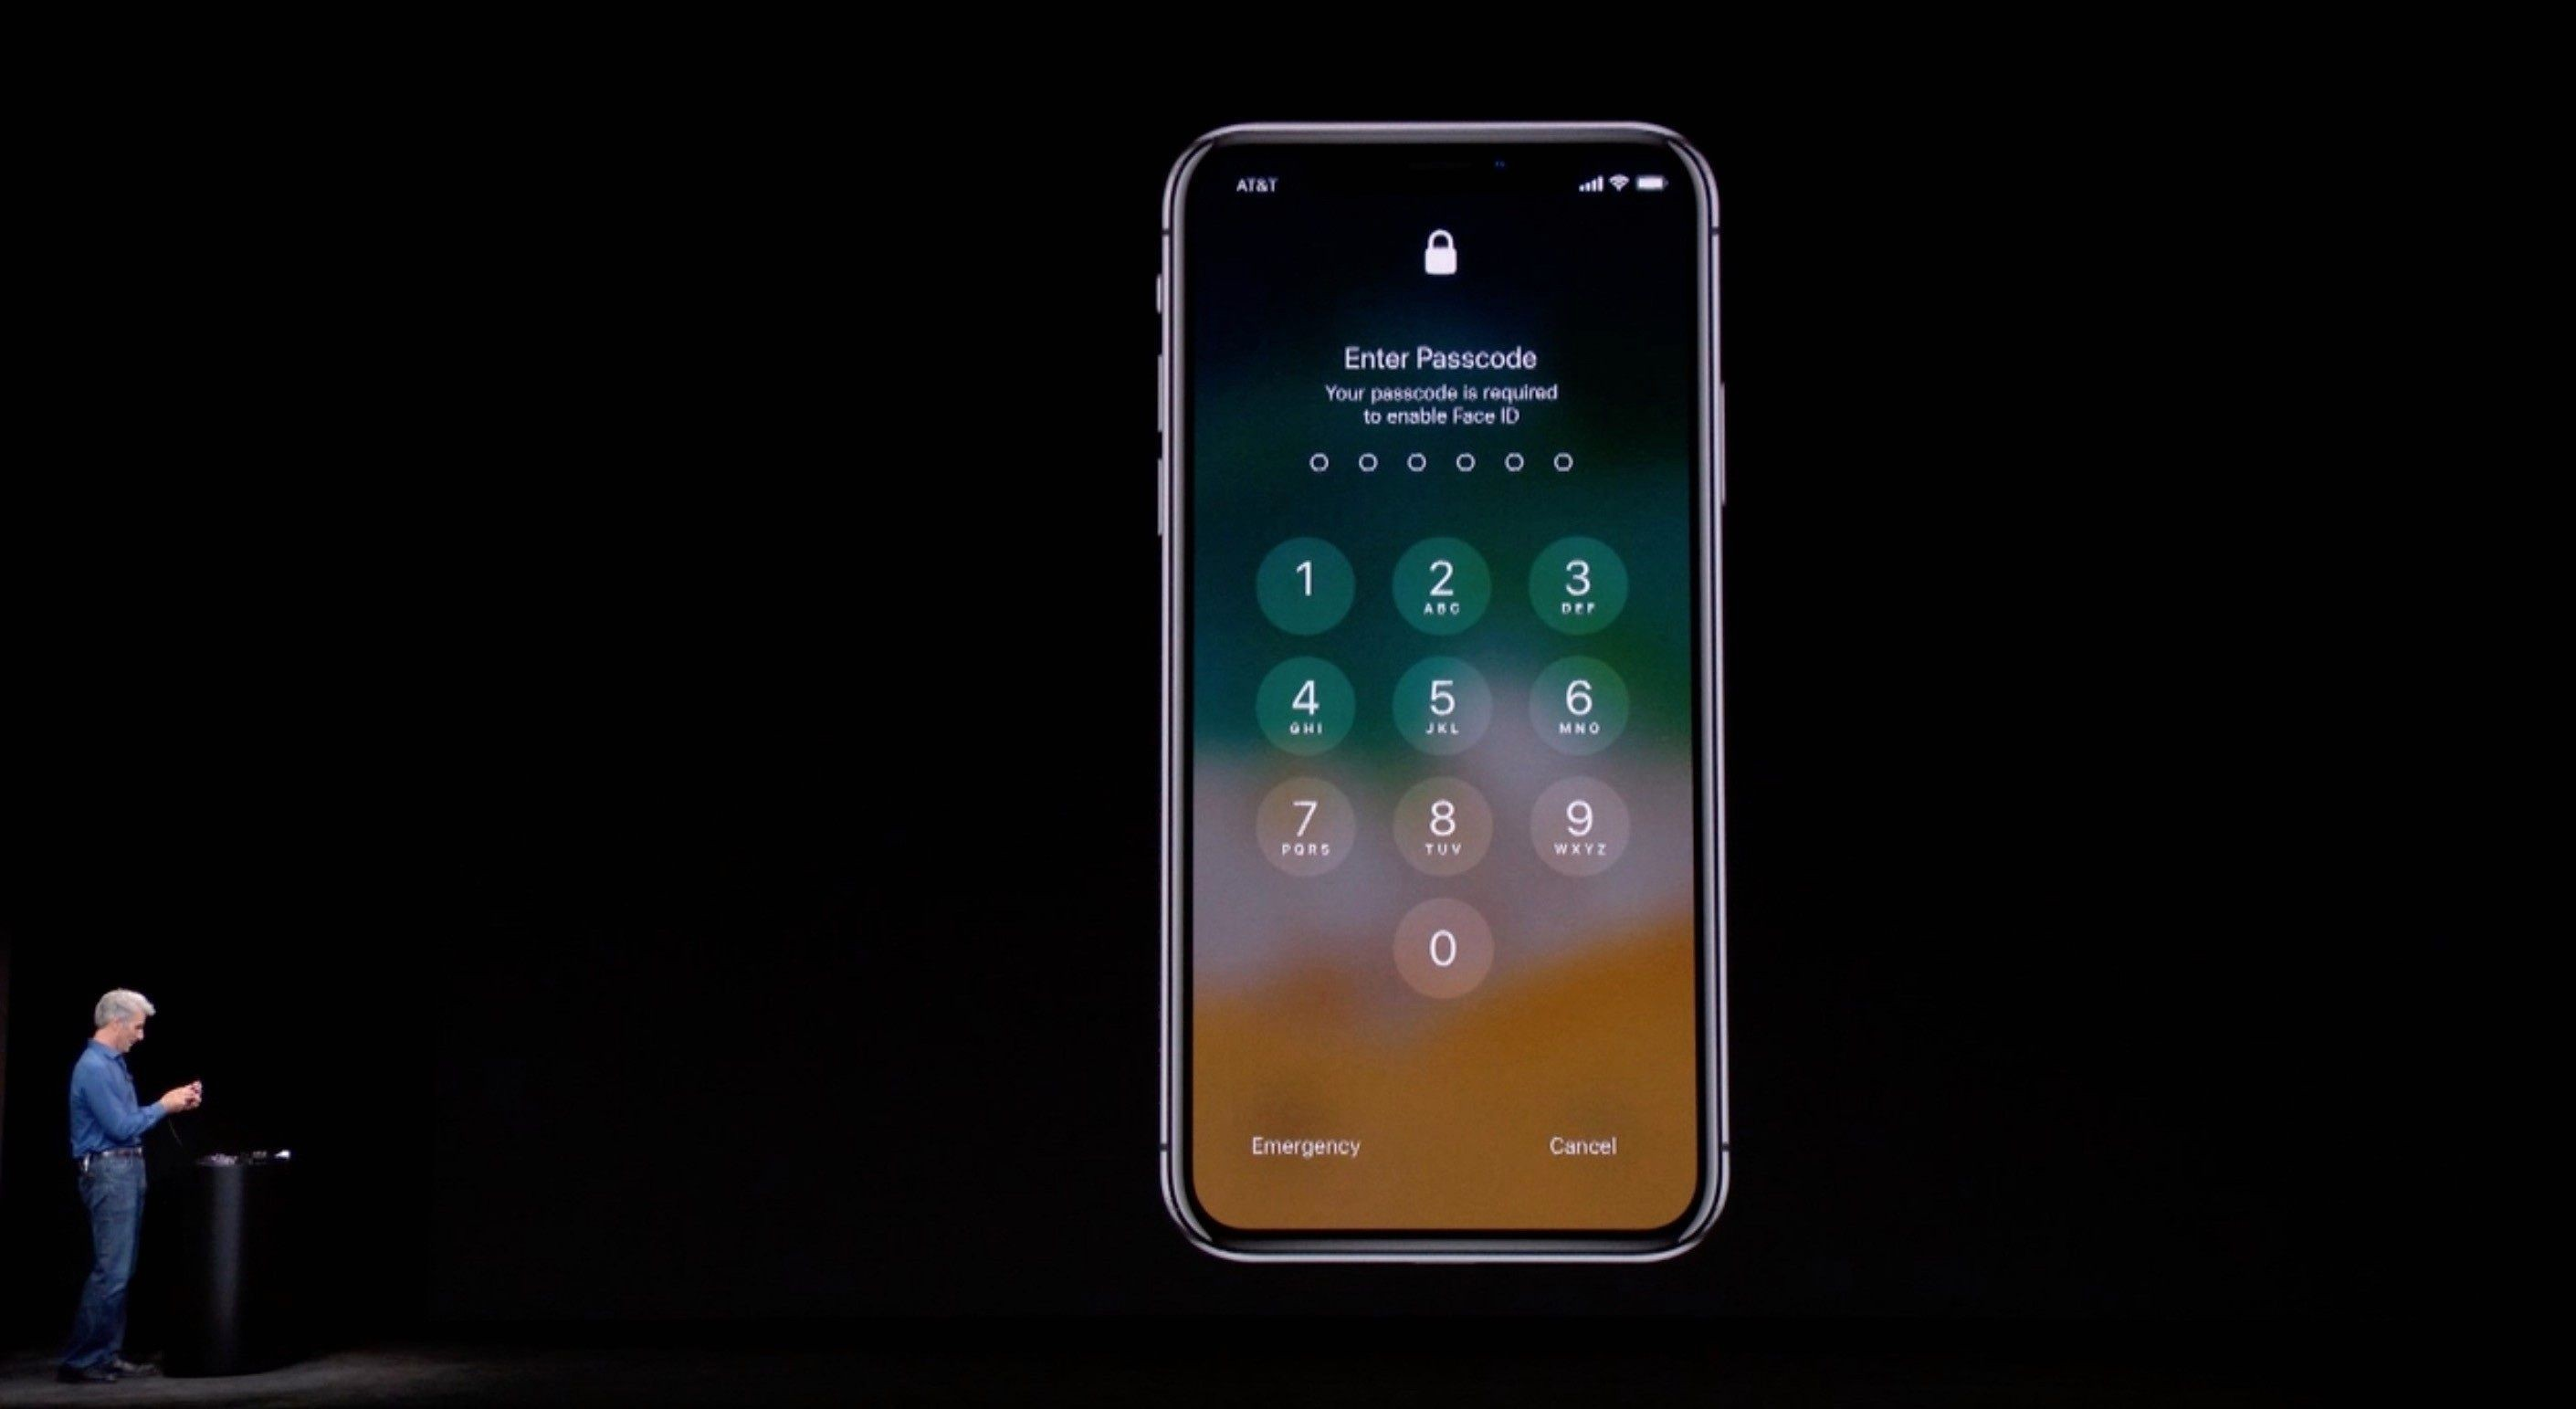 Iphone X 3d Touch Wallpaper Download How to Download iPhone